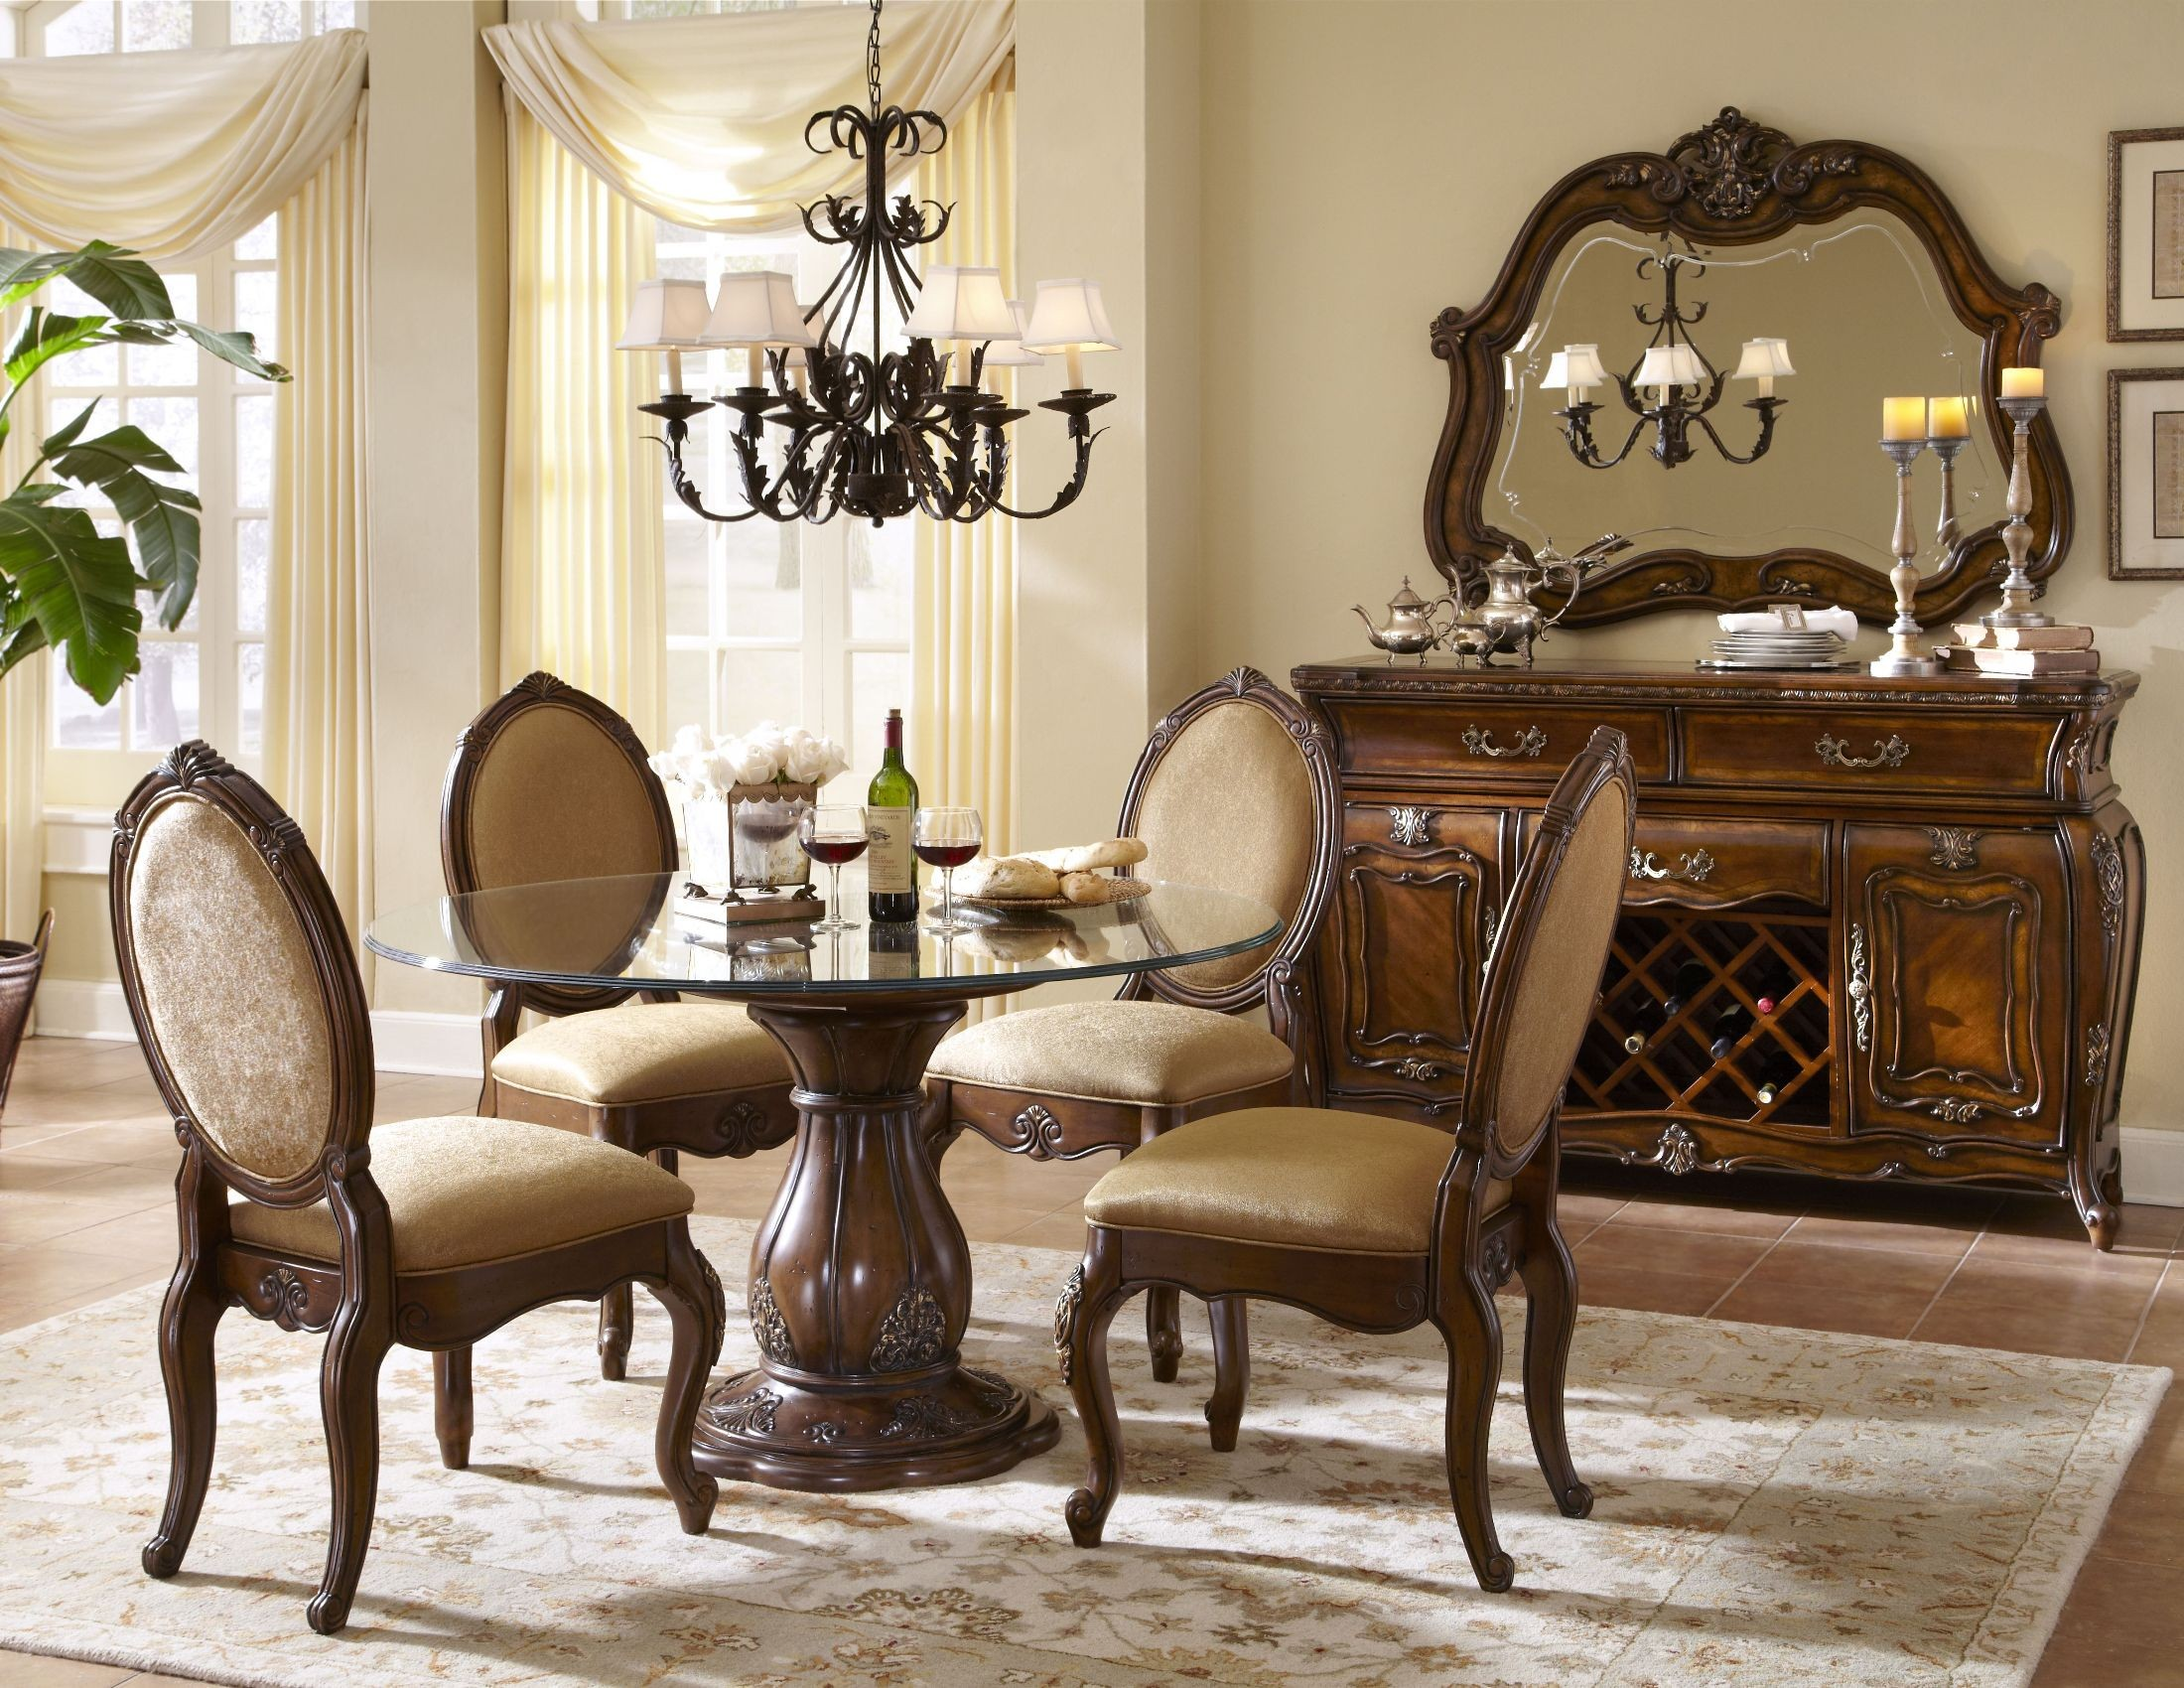 Lavelle Melange China Cabinet With Piers From Aico Coleman Furniture - Aico dining room set